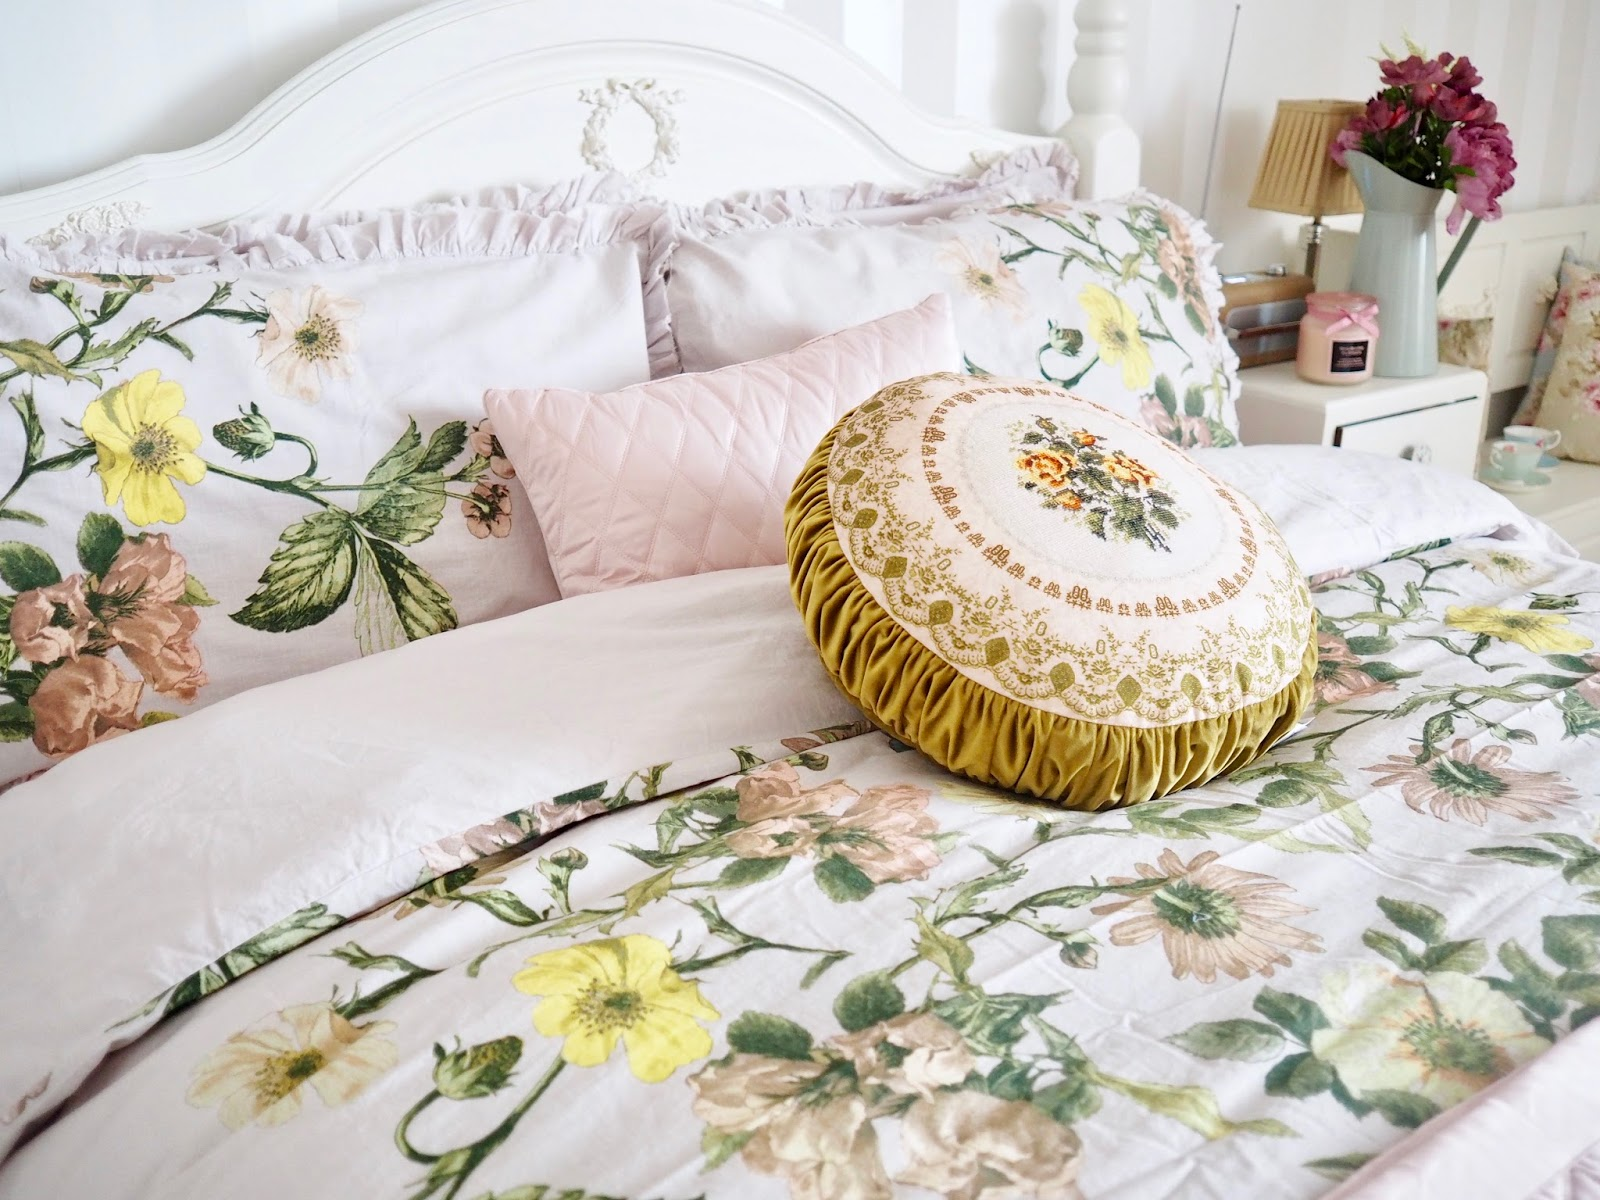 ... getting the wallpaper striper out is to simply change your bedding. Today I have teamed up with Marks & Spencer to share my new Spring sheets and decor.